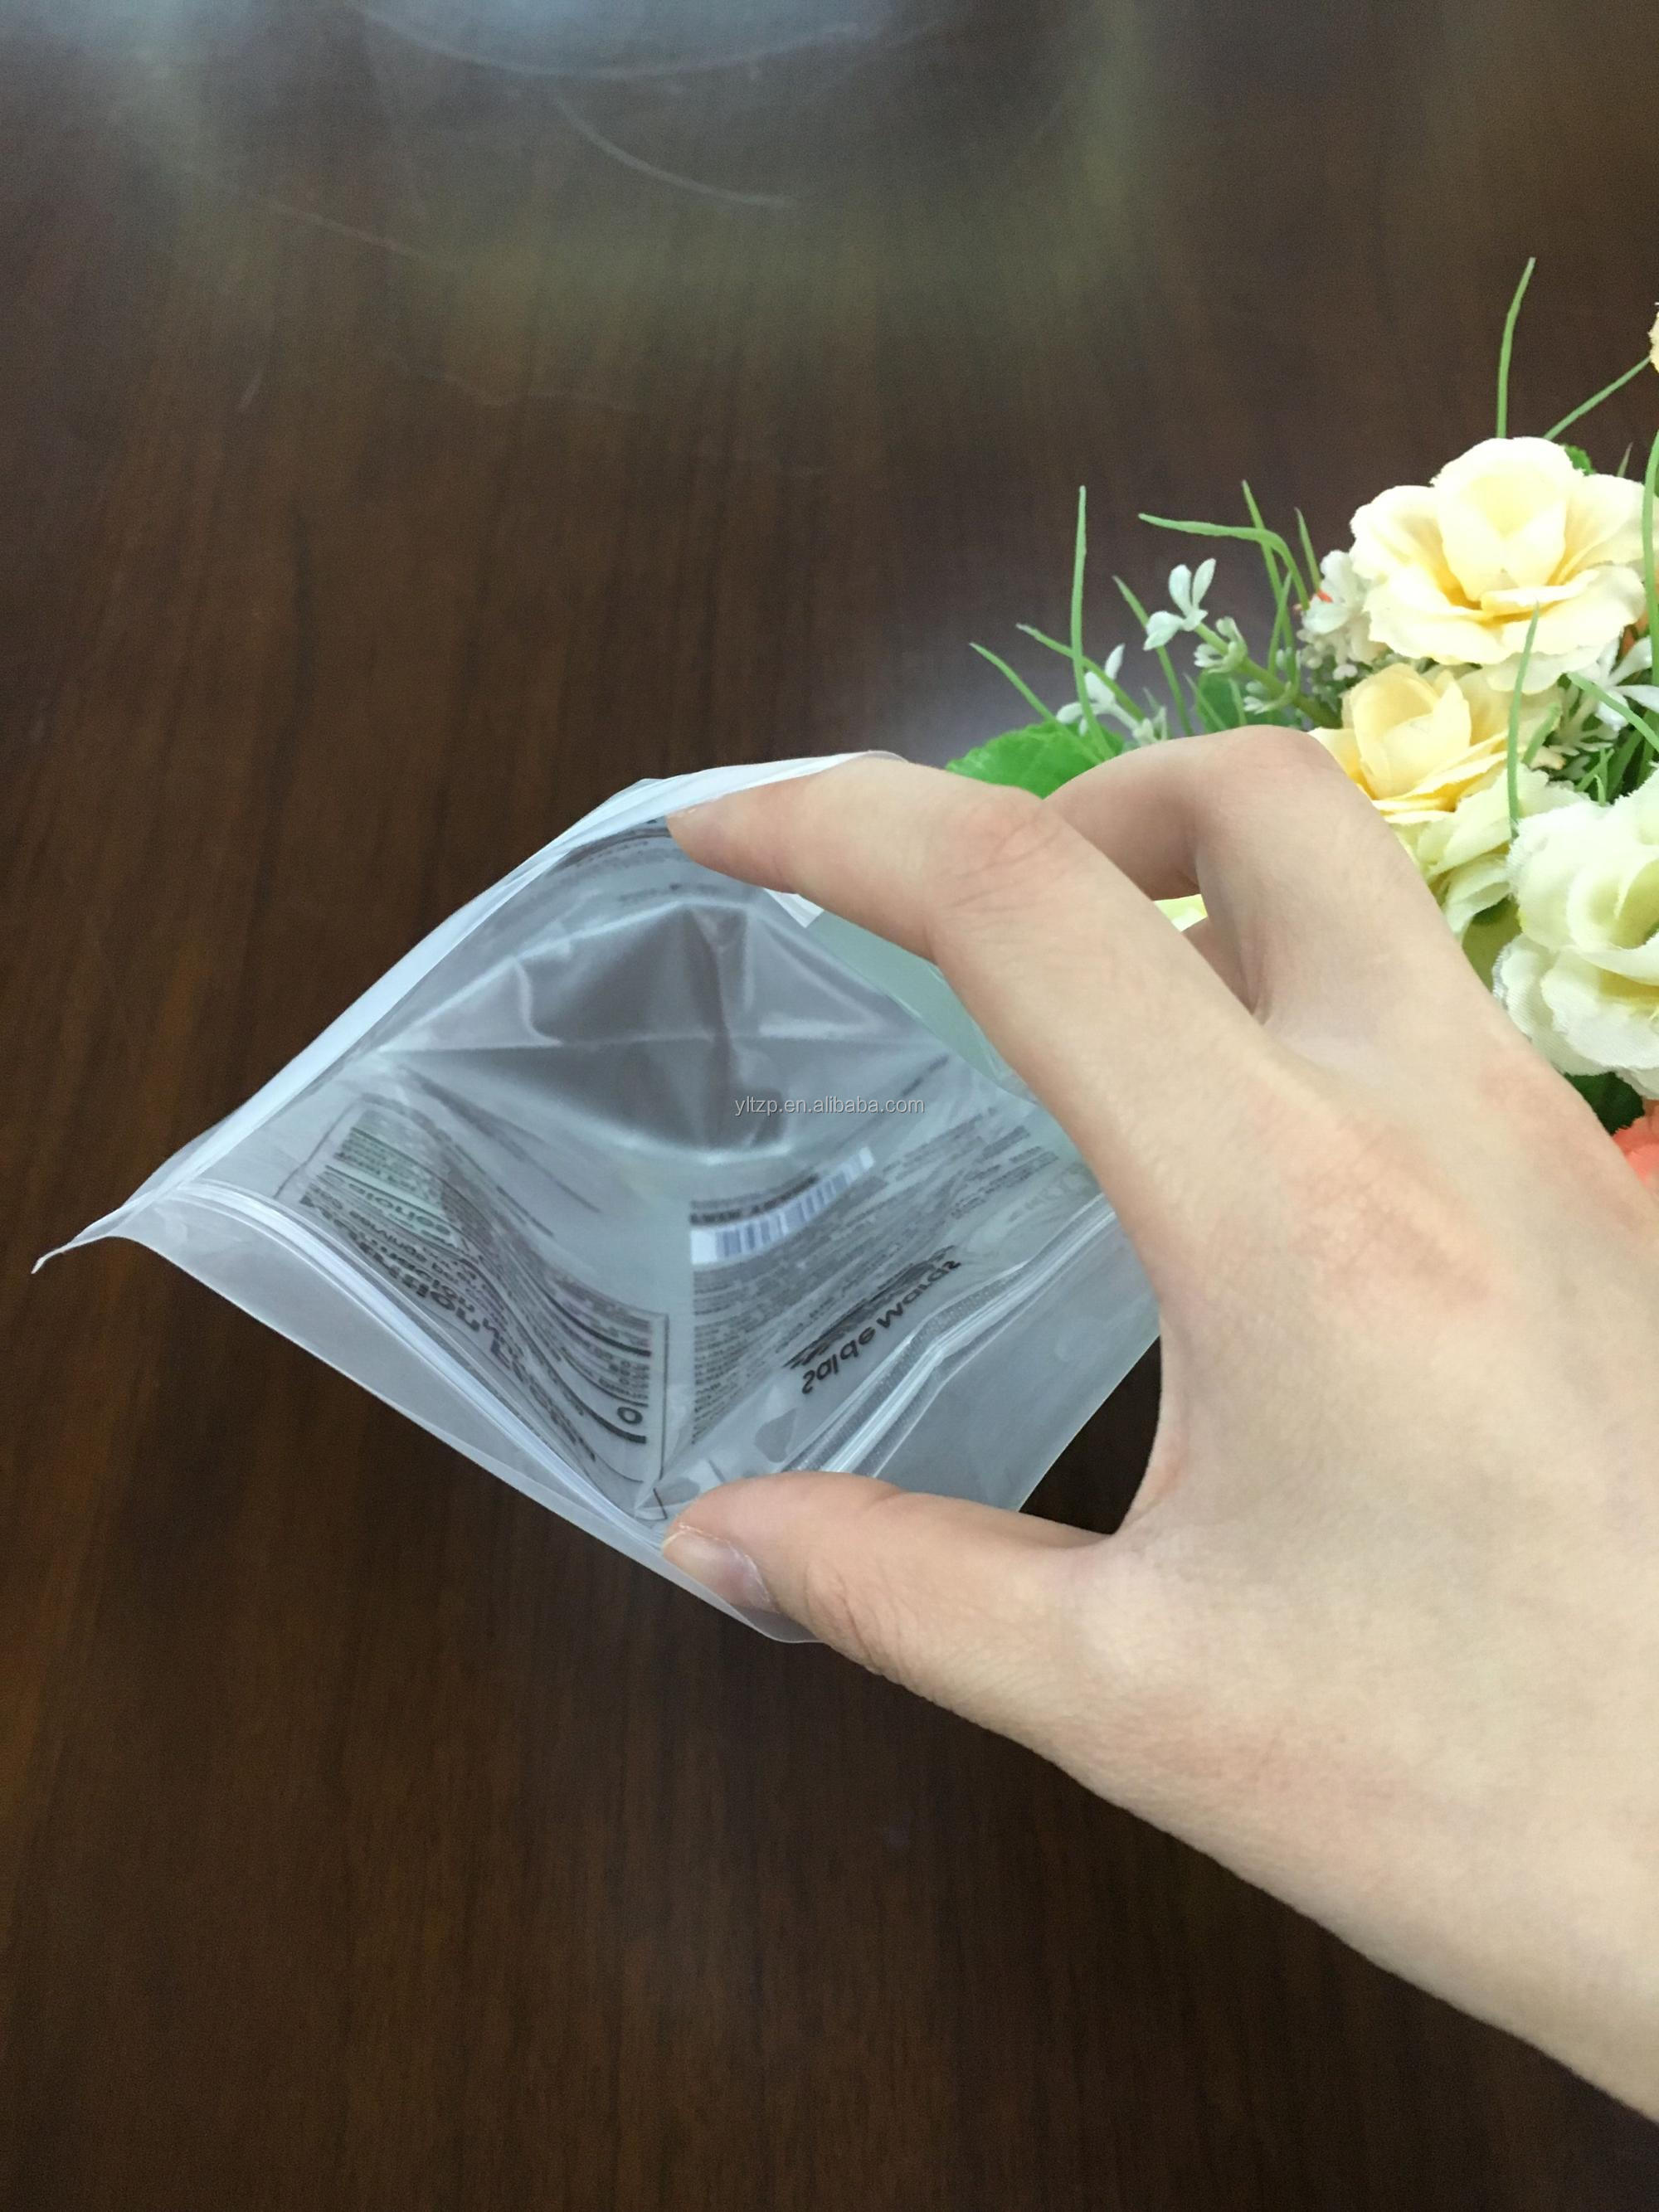 Matte OPP/PET/PE resealable semi-transparent ziplock bag zipper bag clear stand up pouches